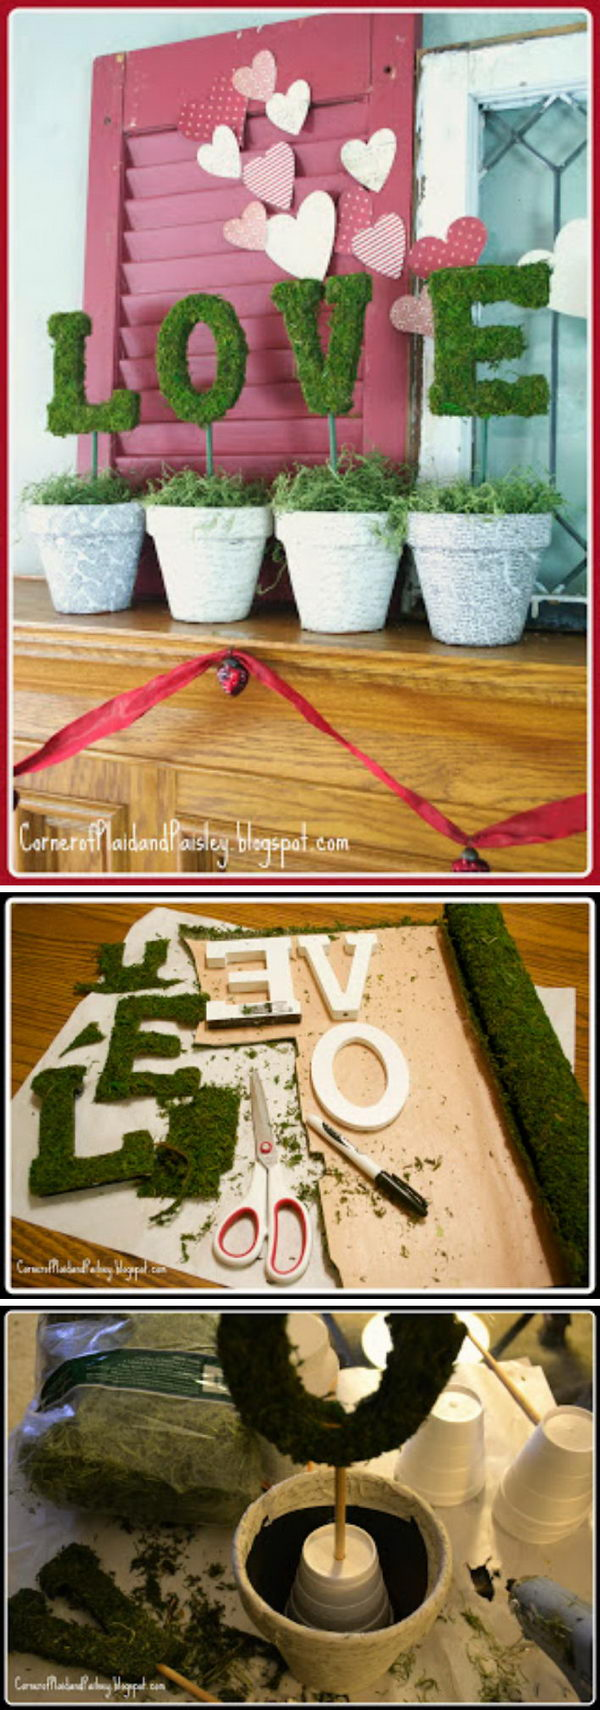 DIY Topiary Moss Love Letters.